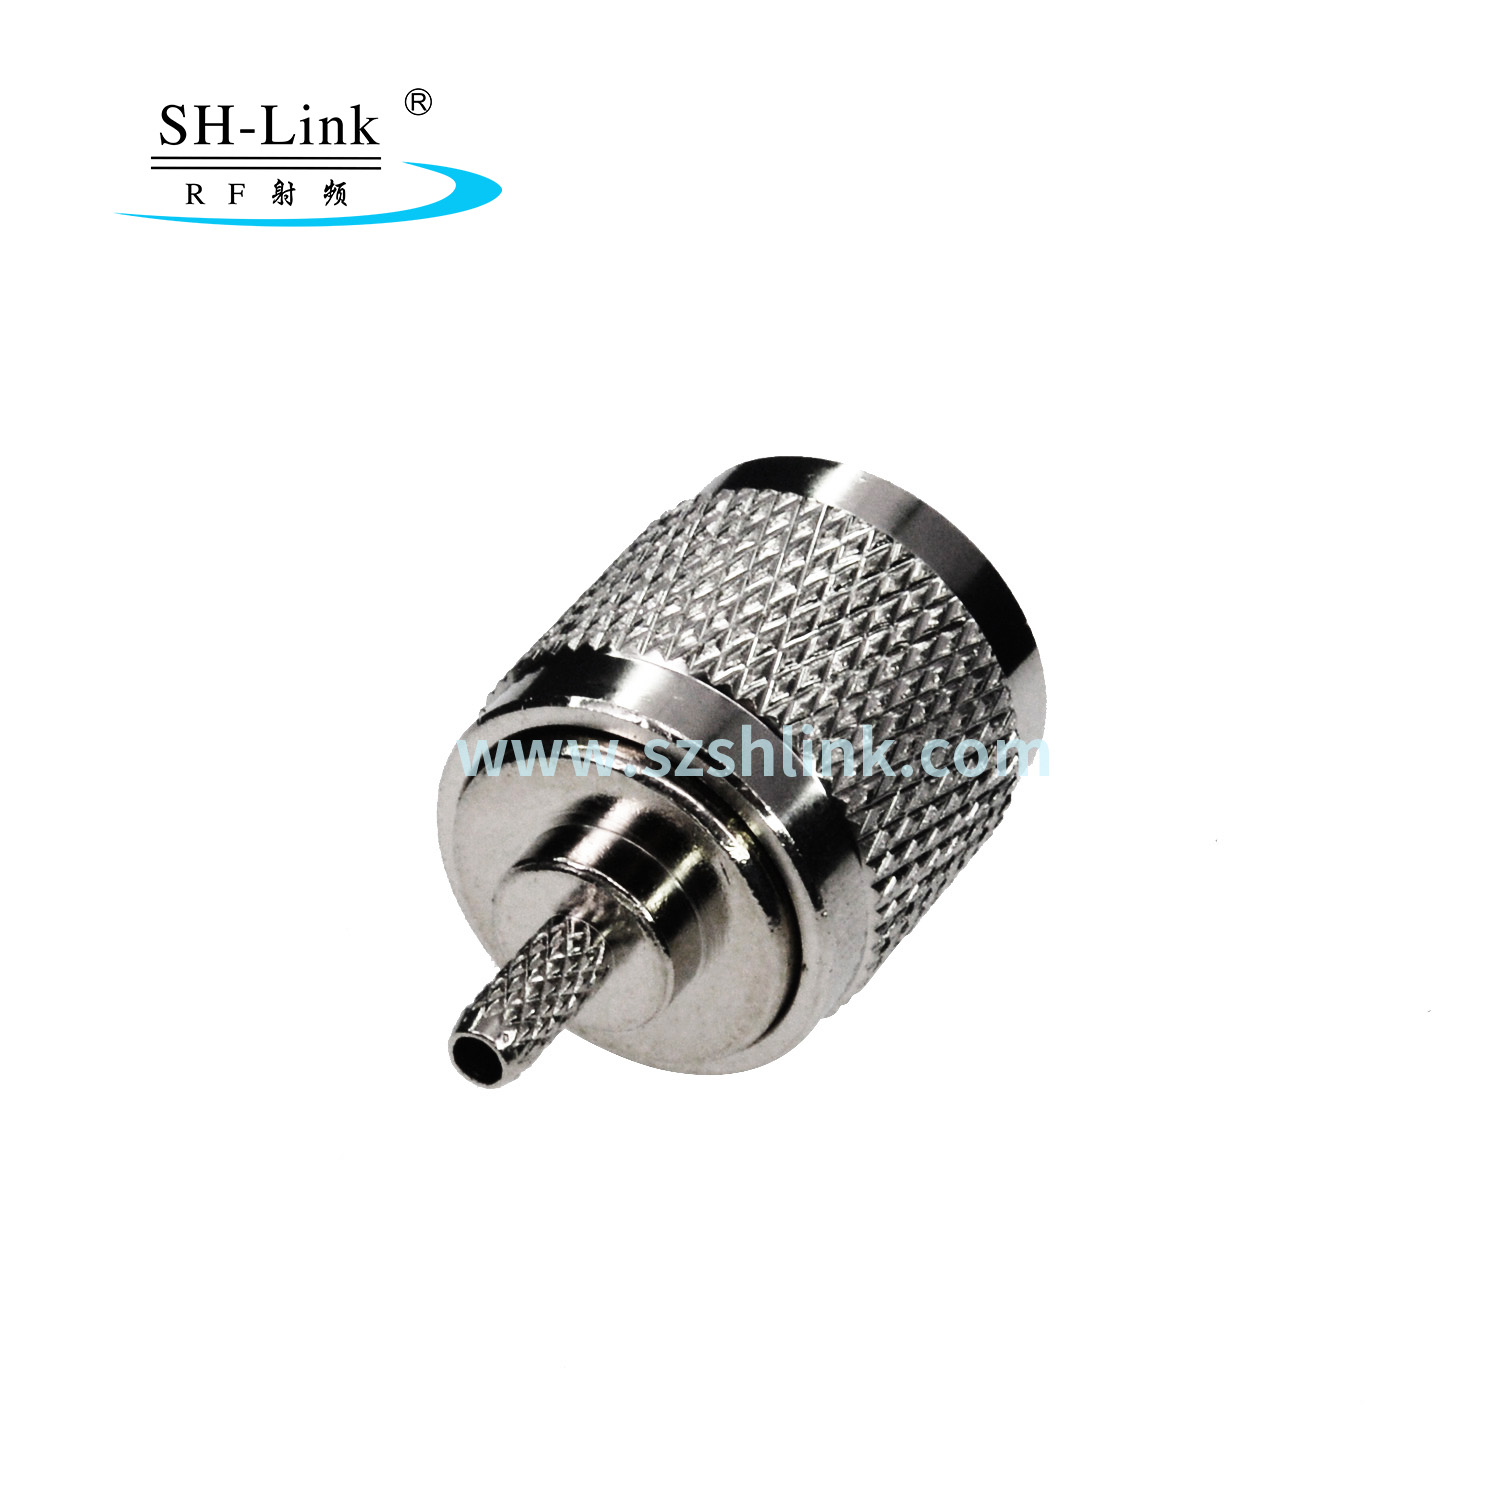 Custom coaxial cable N connector Male Crimp 50 ohm for RG174 RG316